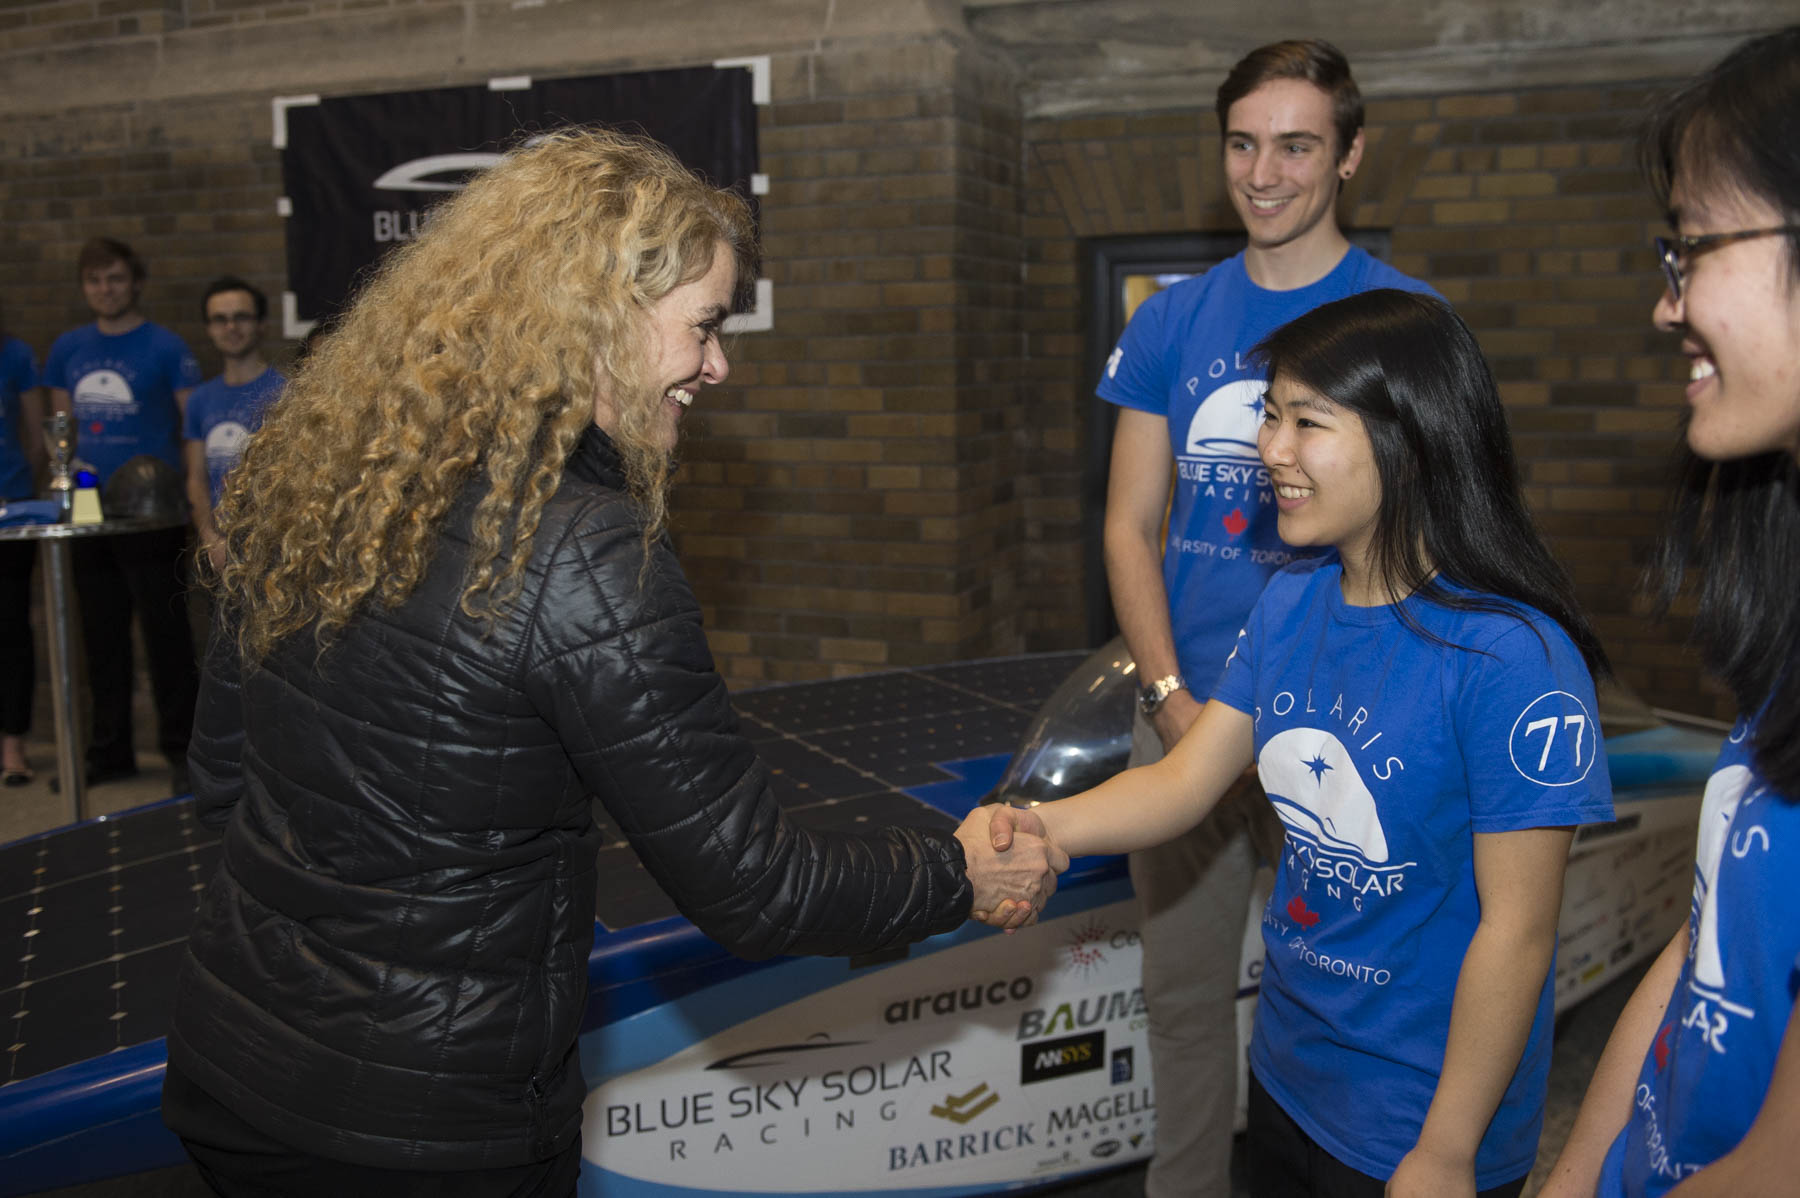 In the evening, the Governor General visited the MaRS Discovery District where she met with students from the University of Toronto.